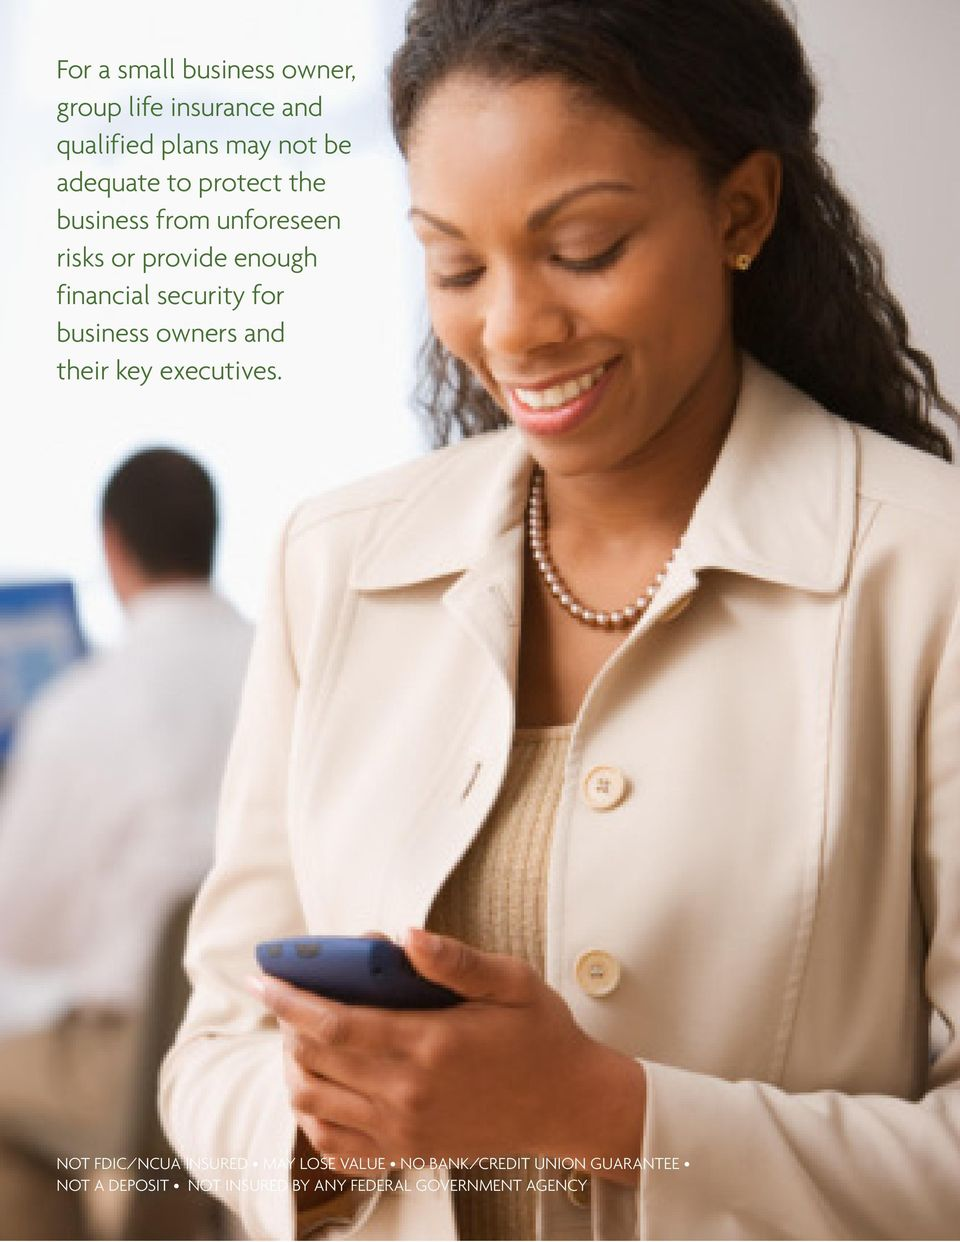 security for business owners and their key executives.